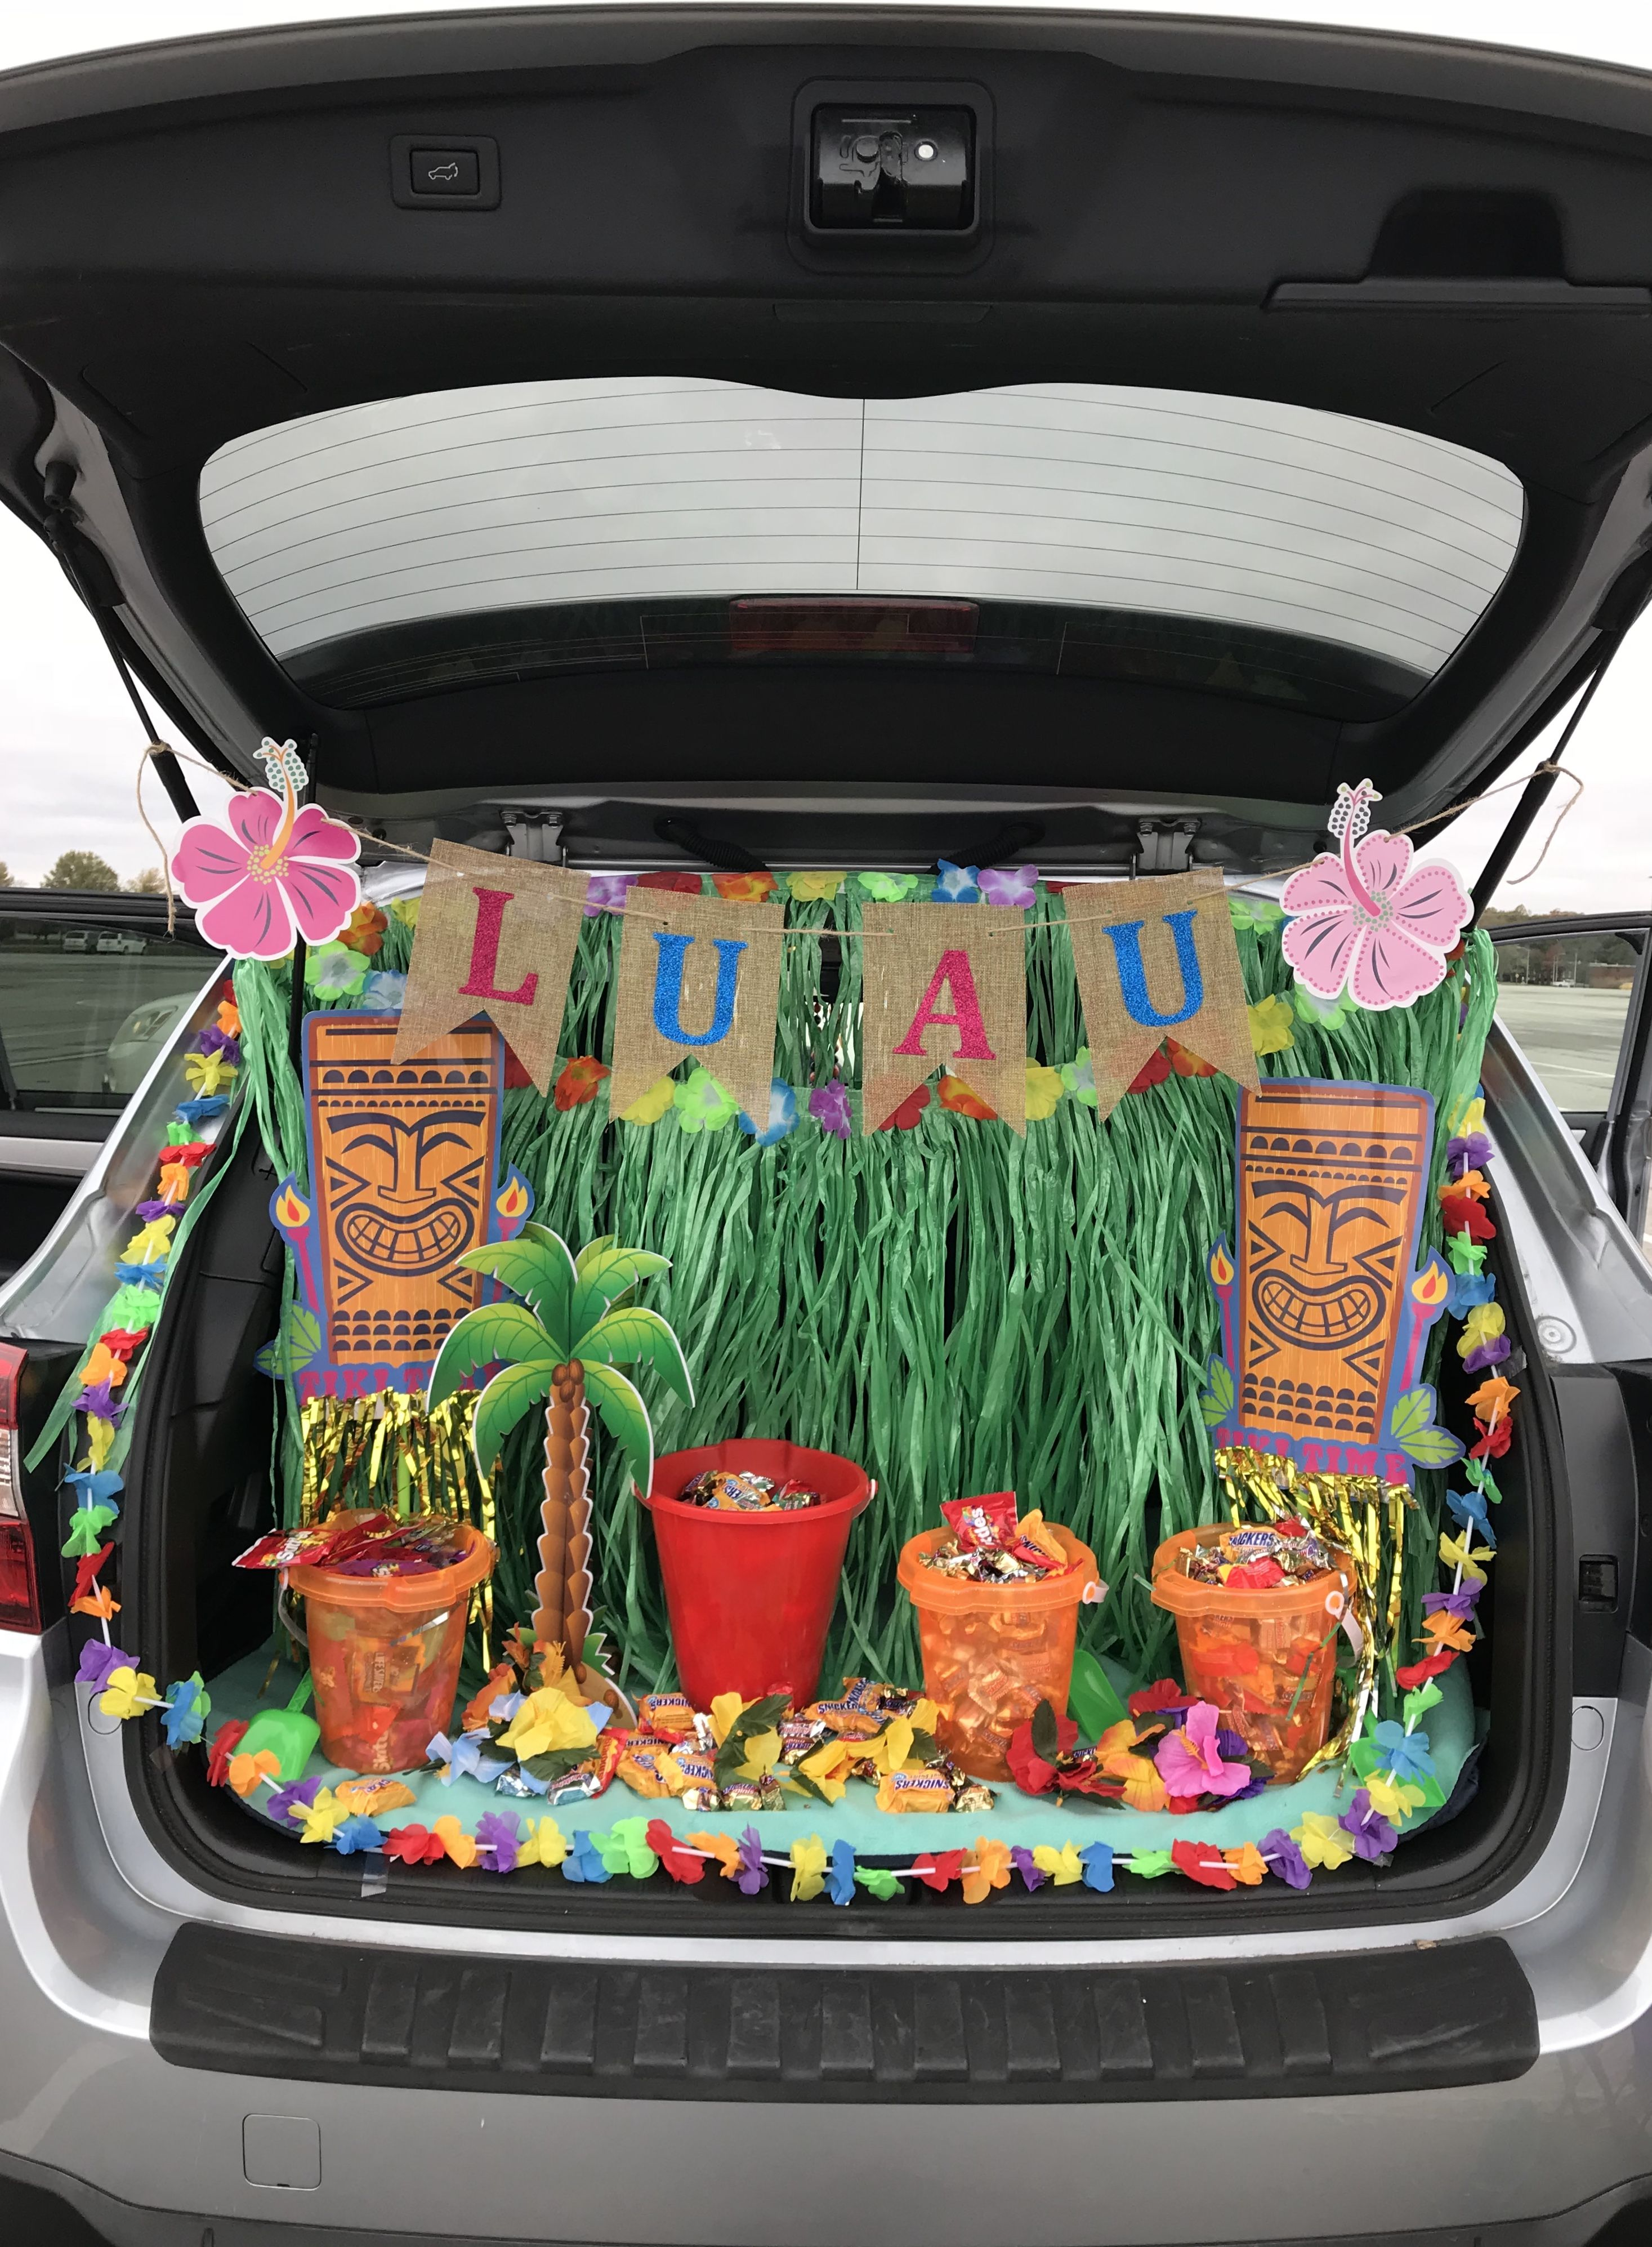 Luau themed trunk or treat using items mostly from Dollar Tree! #trunkortreatideasforcarsforchurch